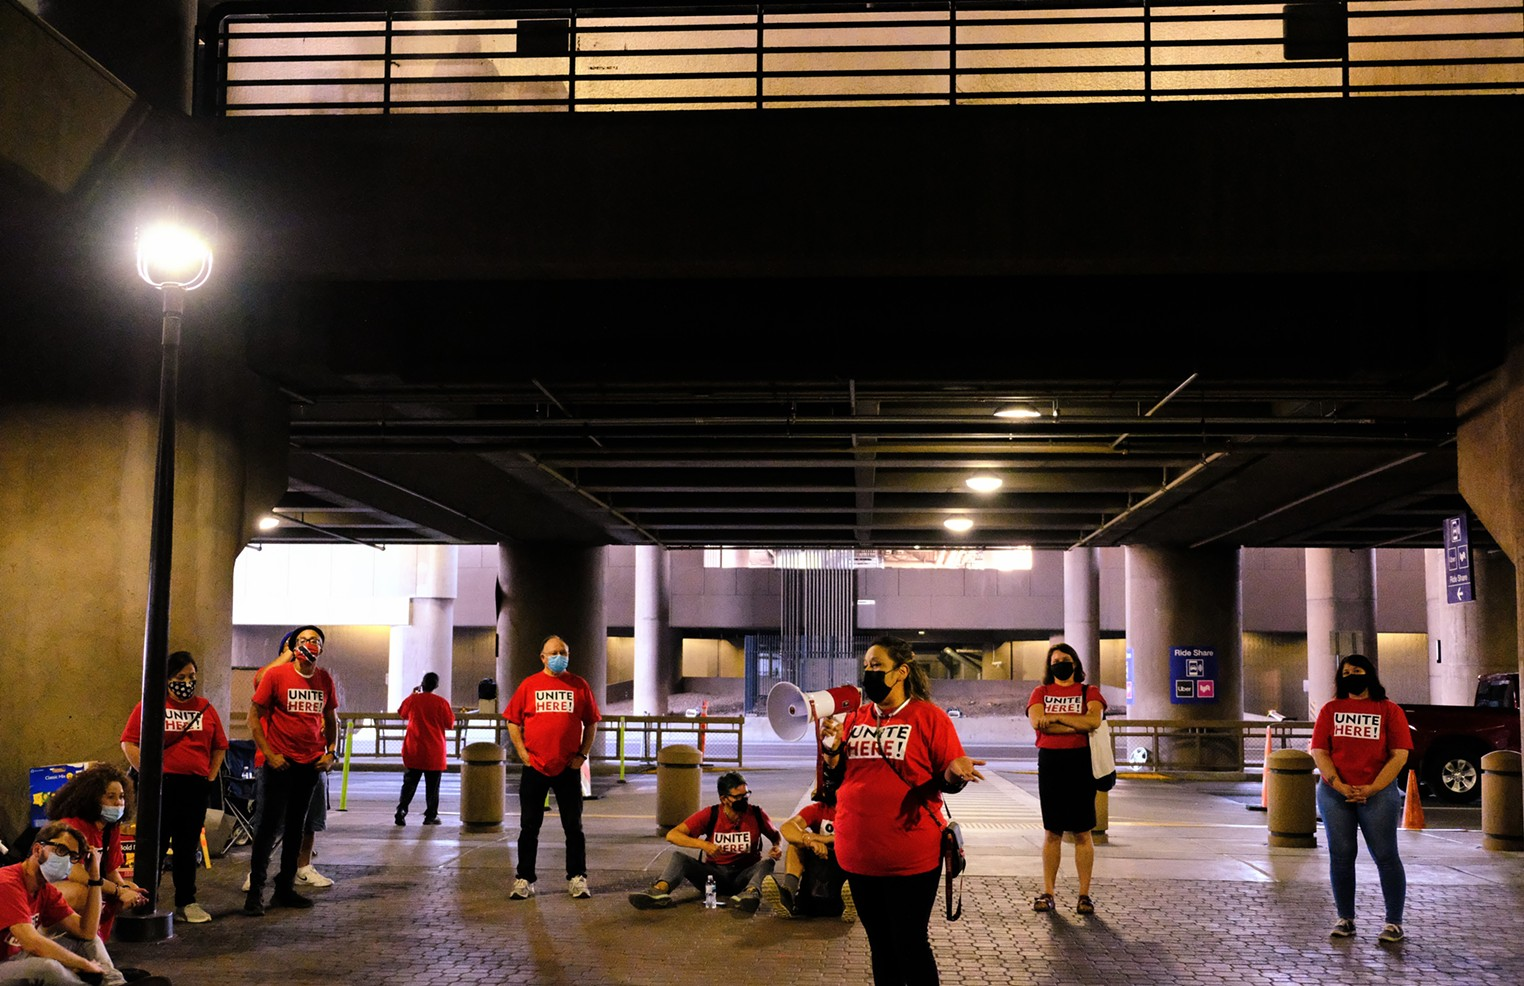 Workers On Strike At Sky Harbor Airport Say They Face Grueling Workplace Conditions